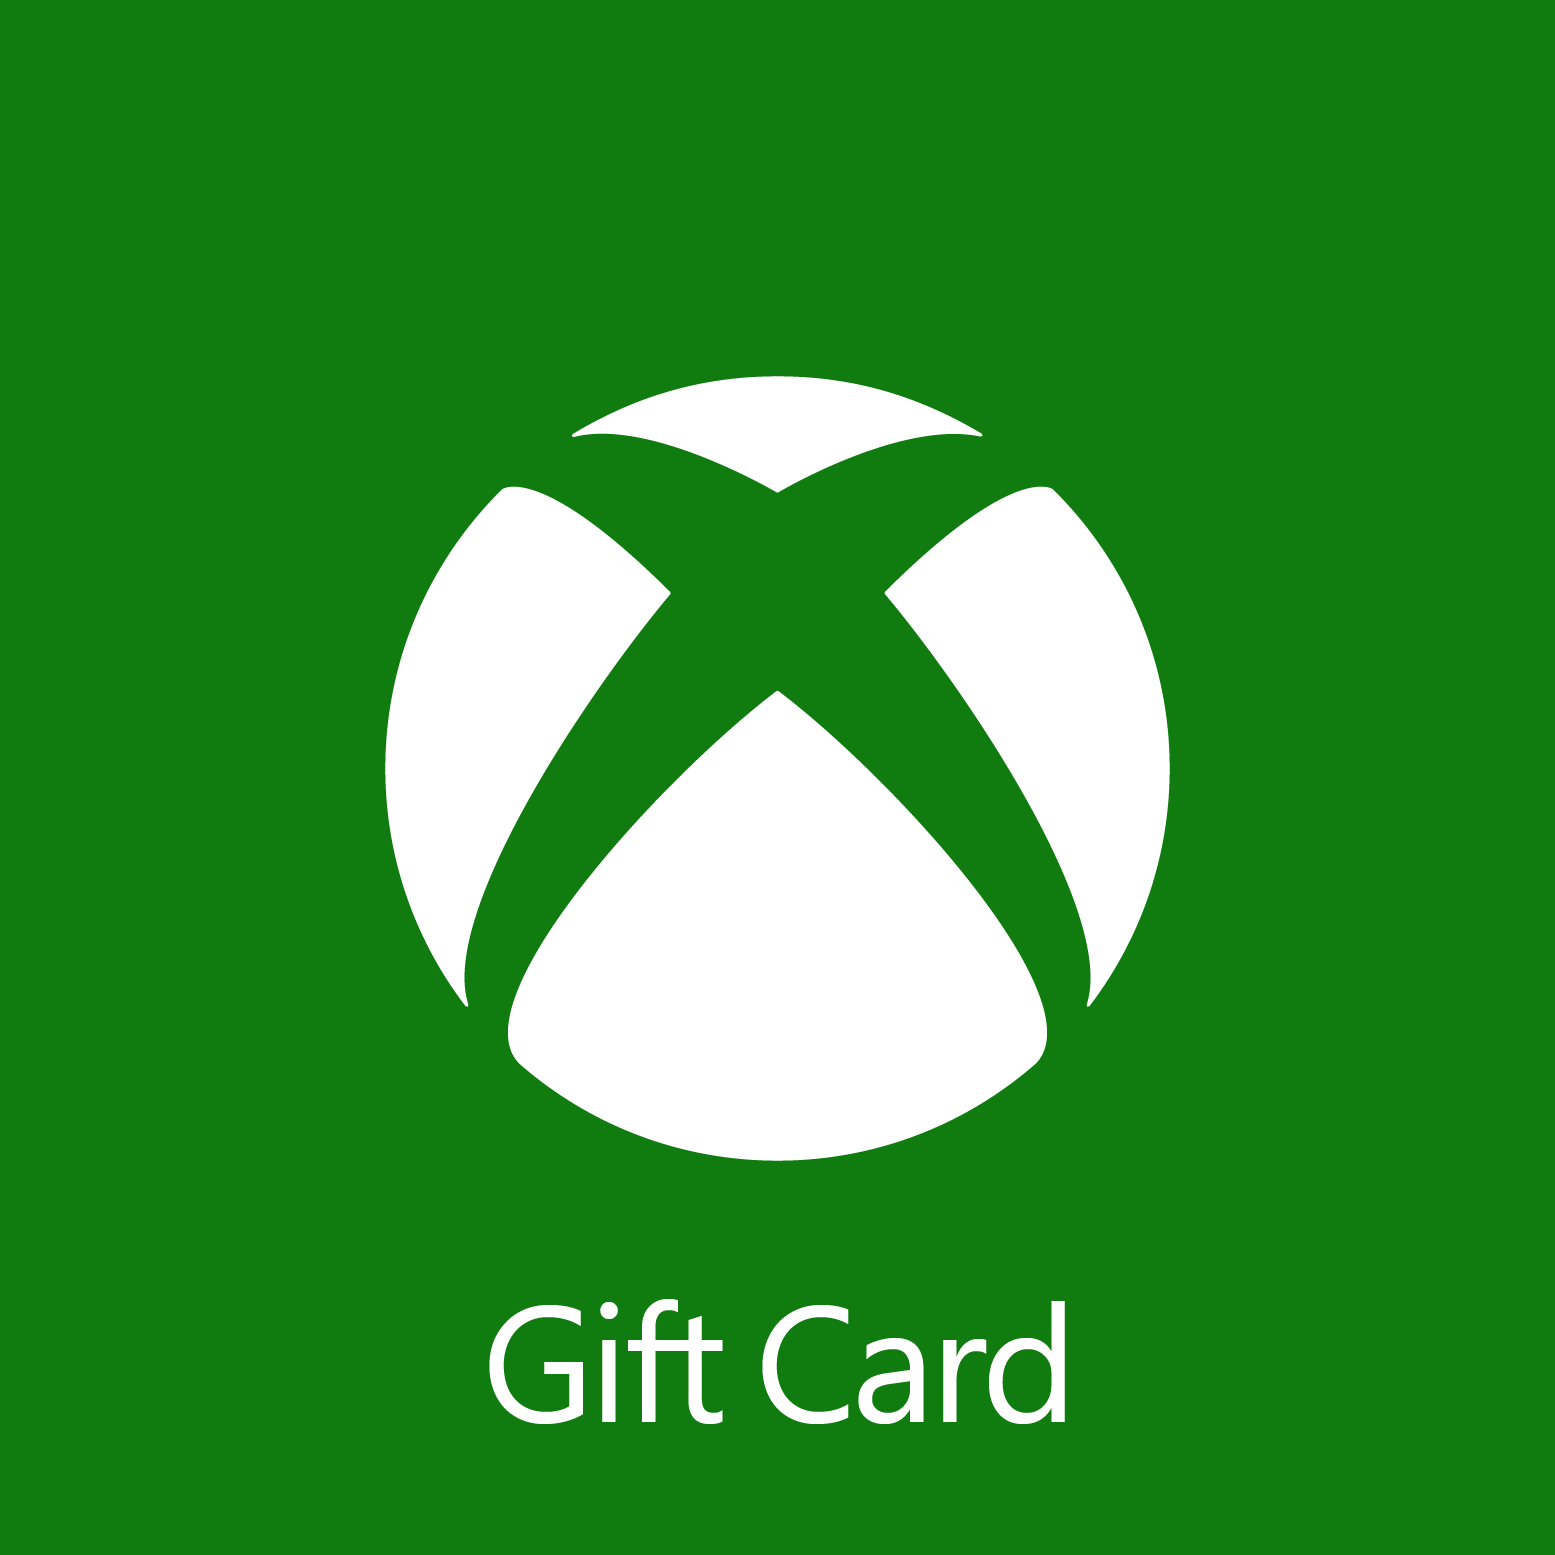 RE1Xx20?ver=255f - $26.00 Xbox Digital Gift Card